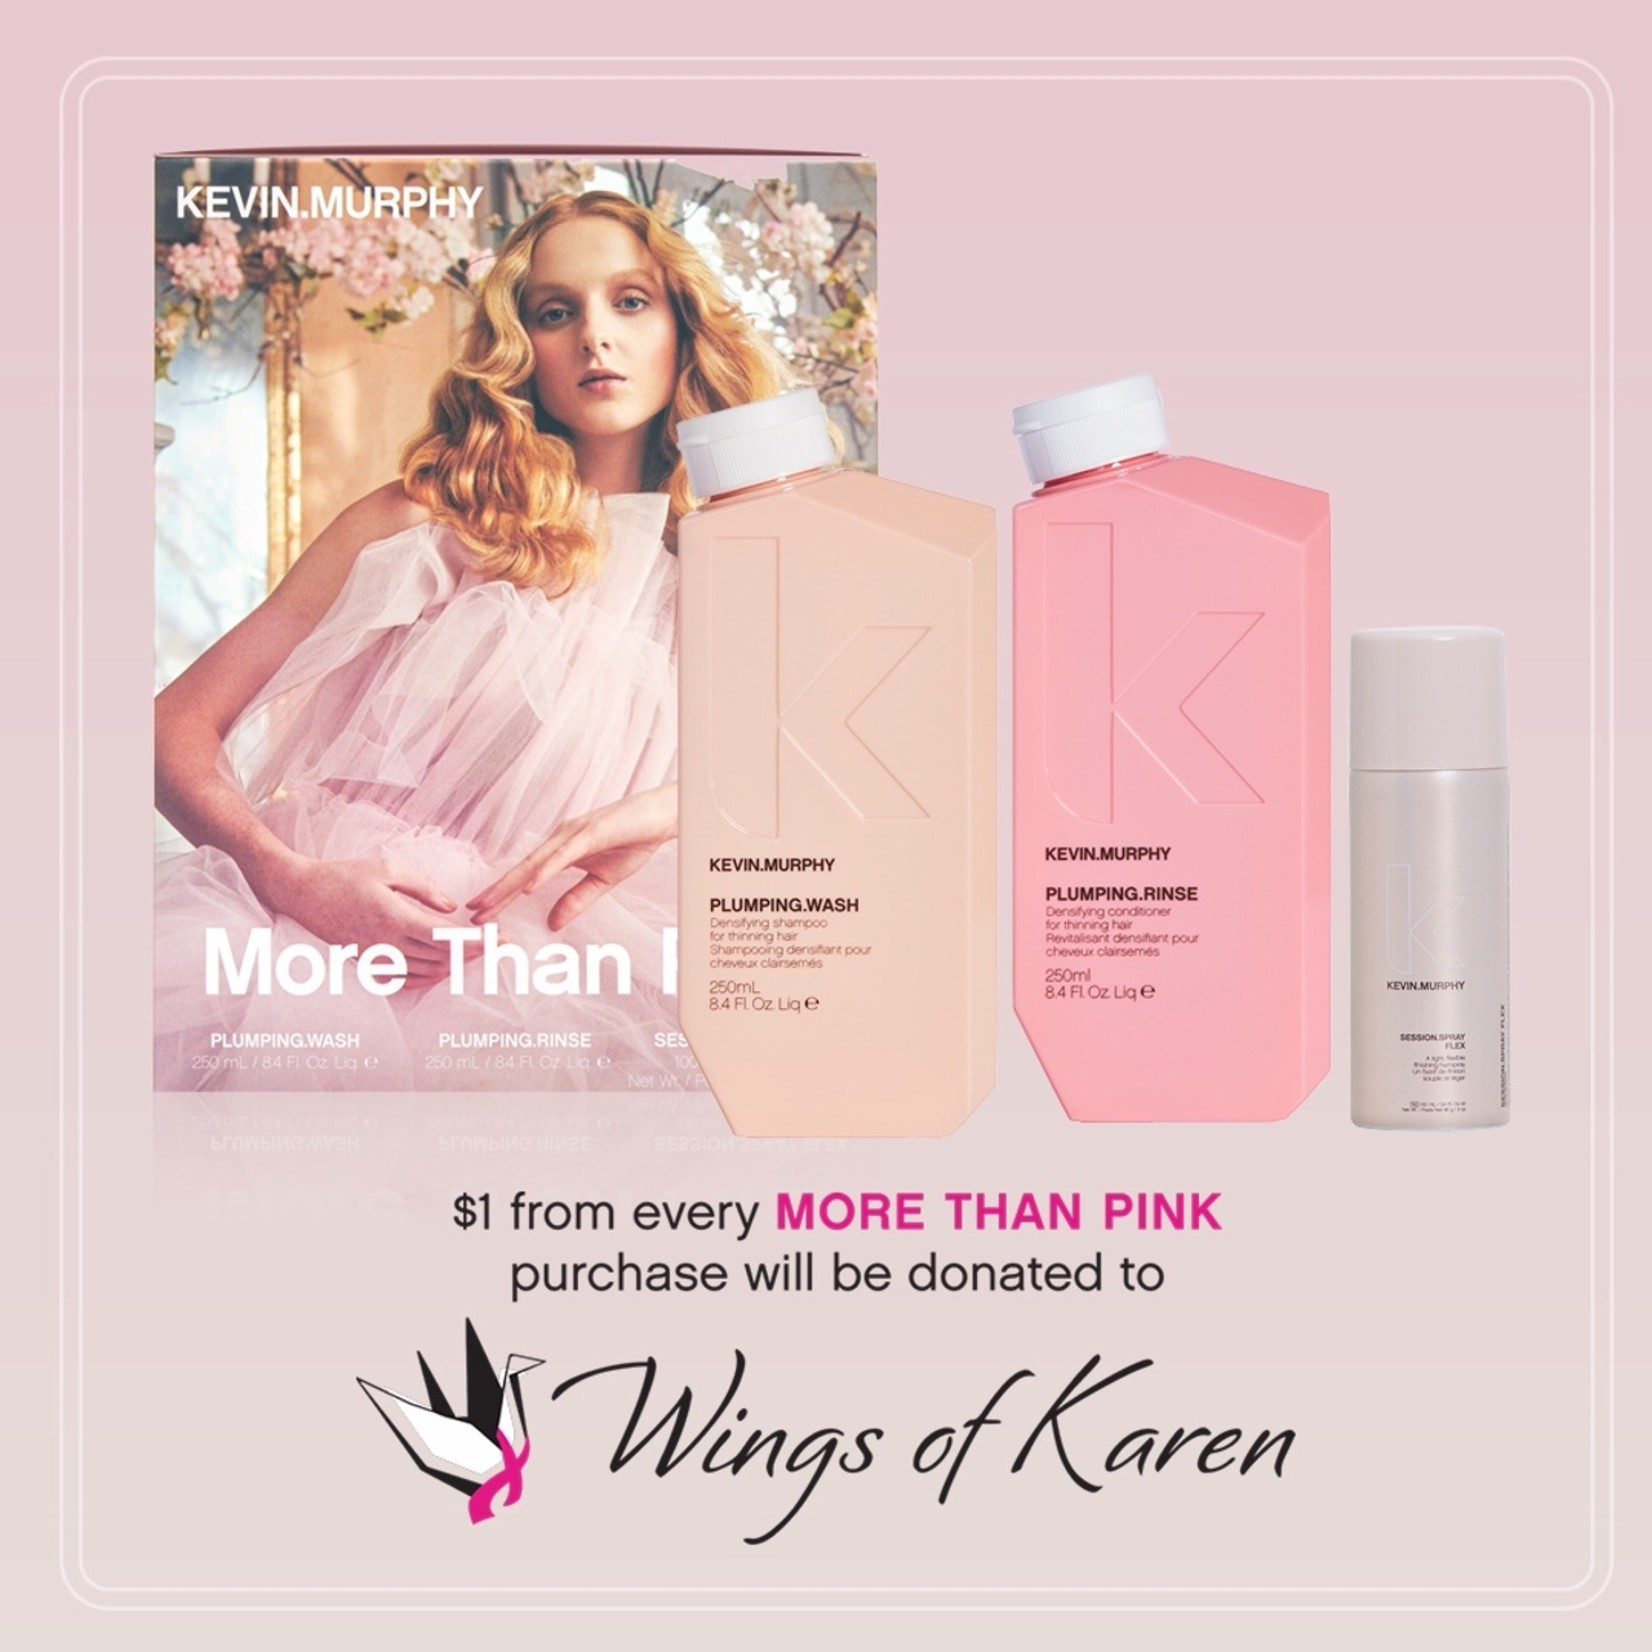 KEVIN.MURPHY KEVIN.MURPHY - MORE THAN PINK